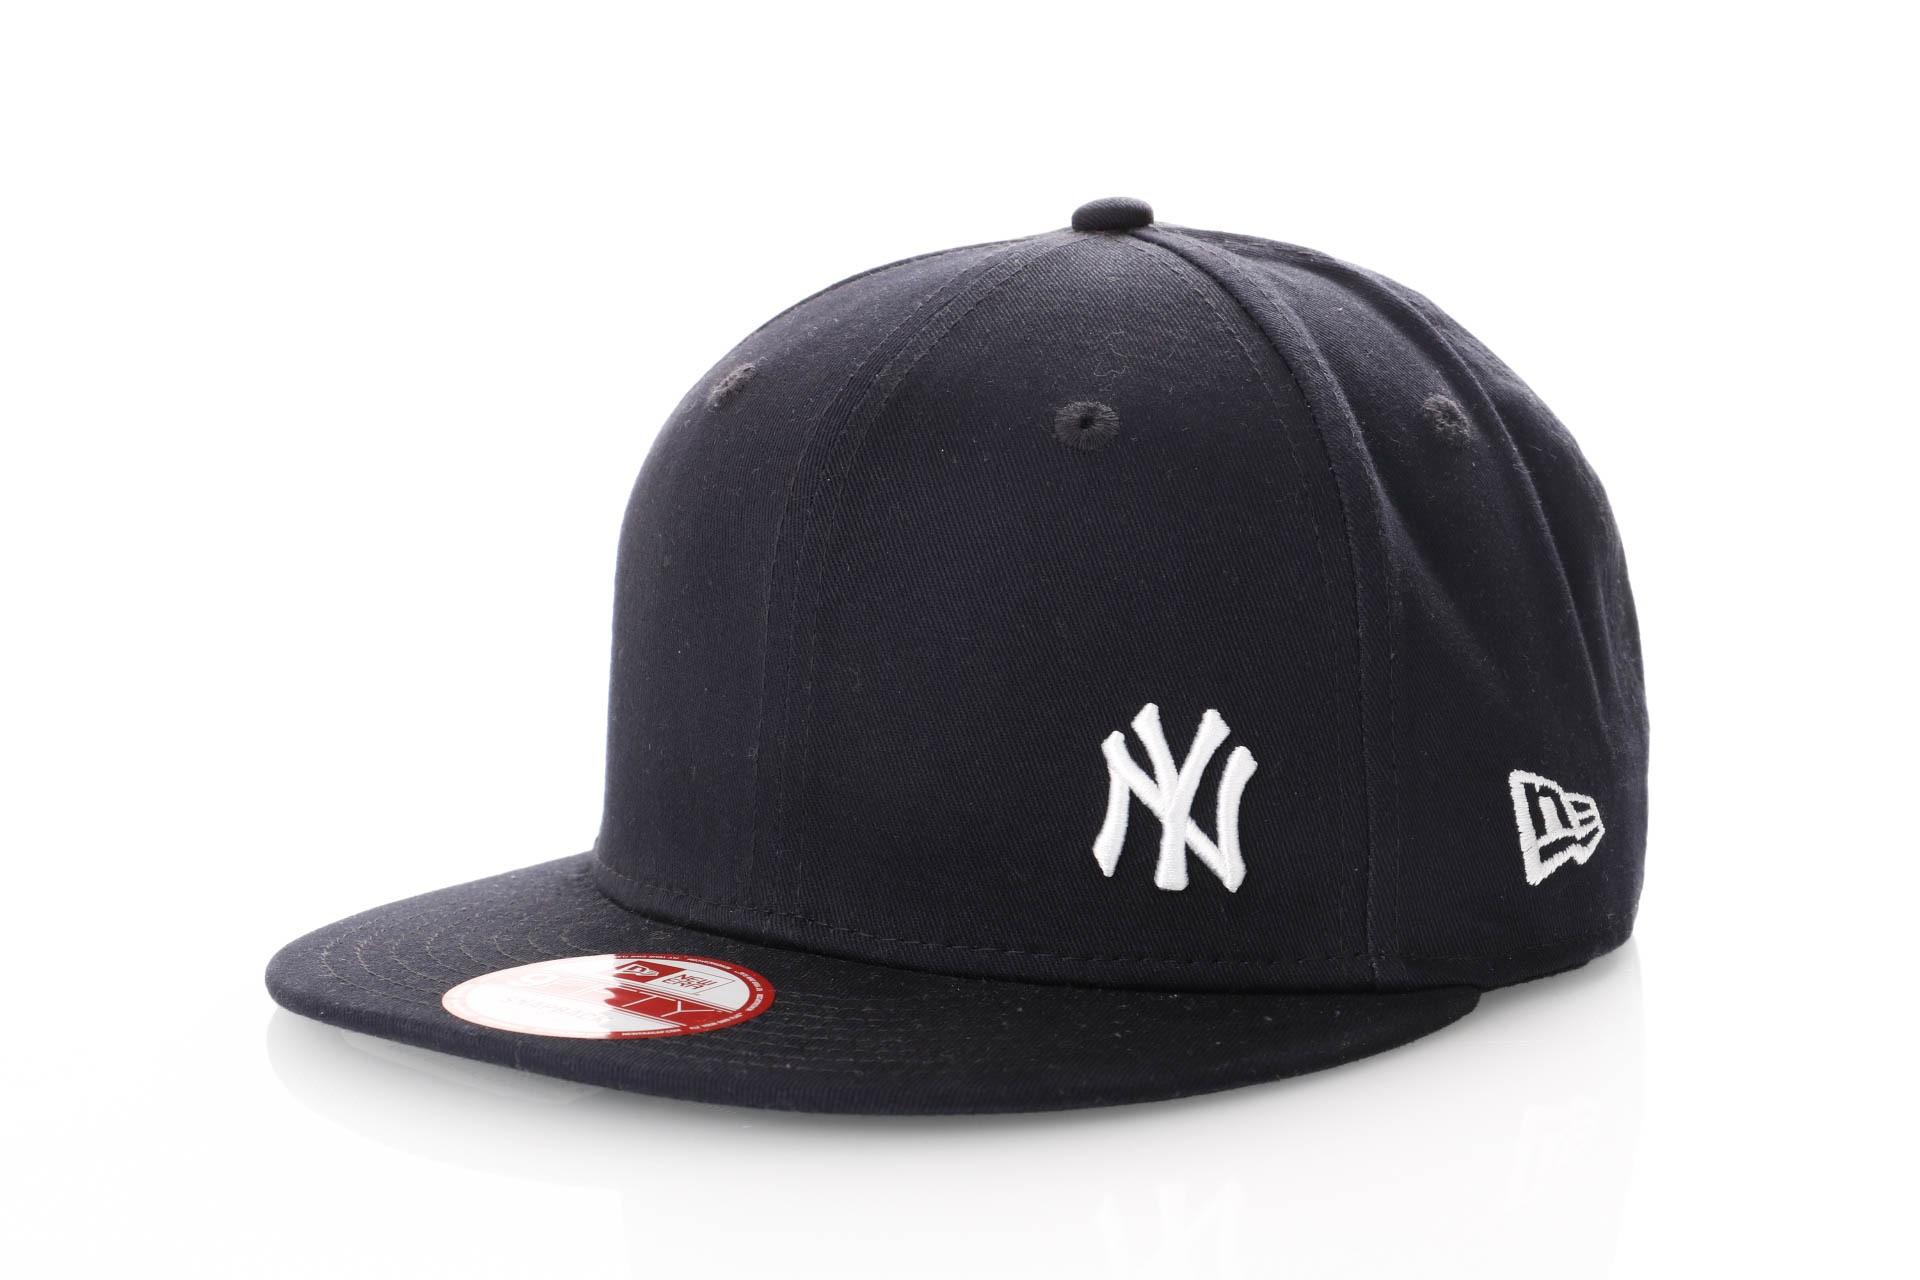 e35cf2792ed New Era Flawless 80212900 Snapback Cap Navy Ny